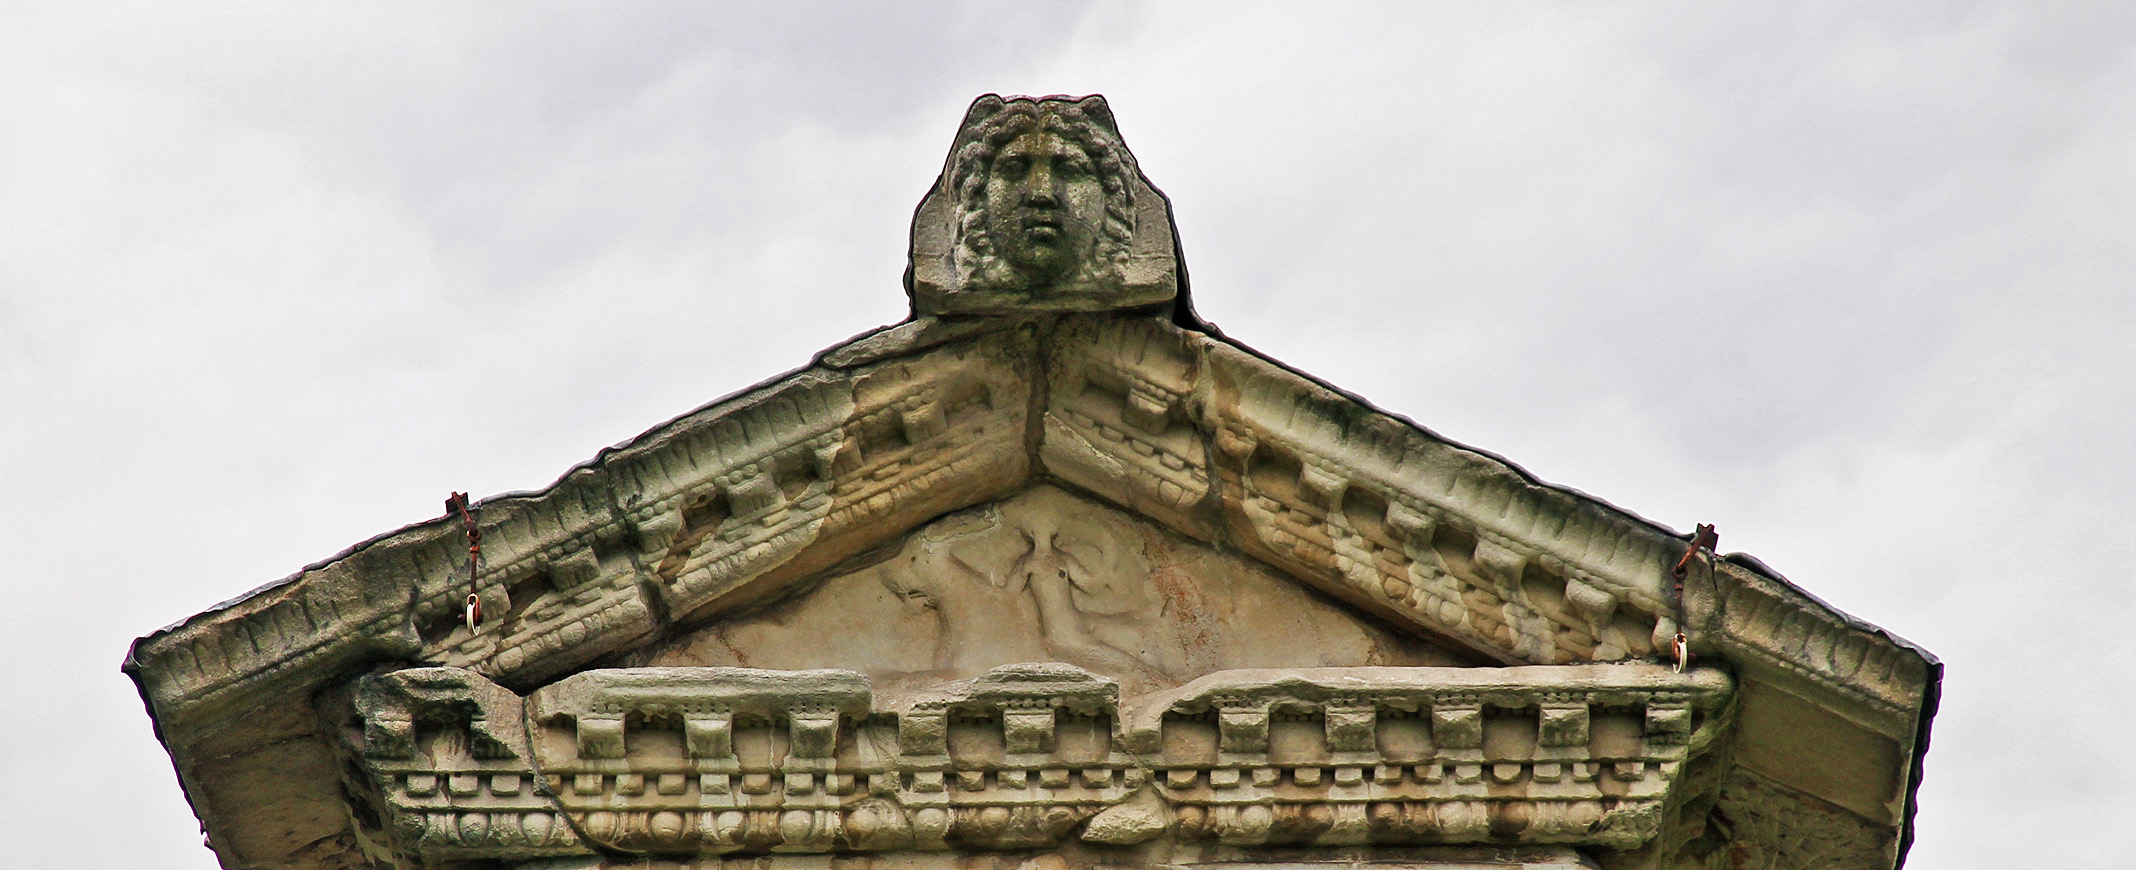 The head of Medusa, guardien of the resting-place of the dead, graces the front of the Spectatius Tomb's roof.